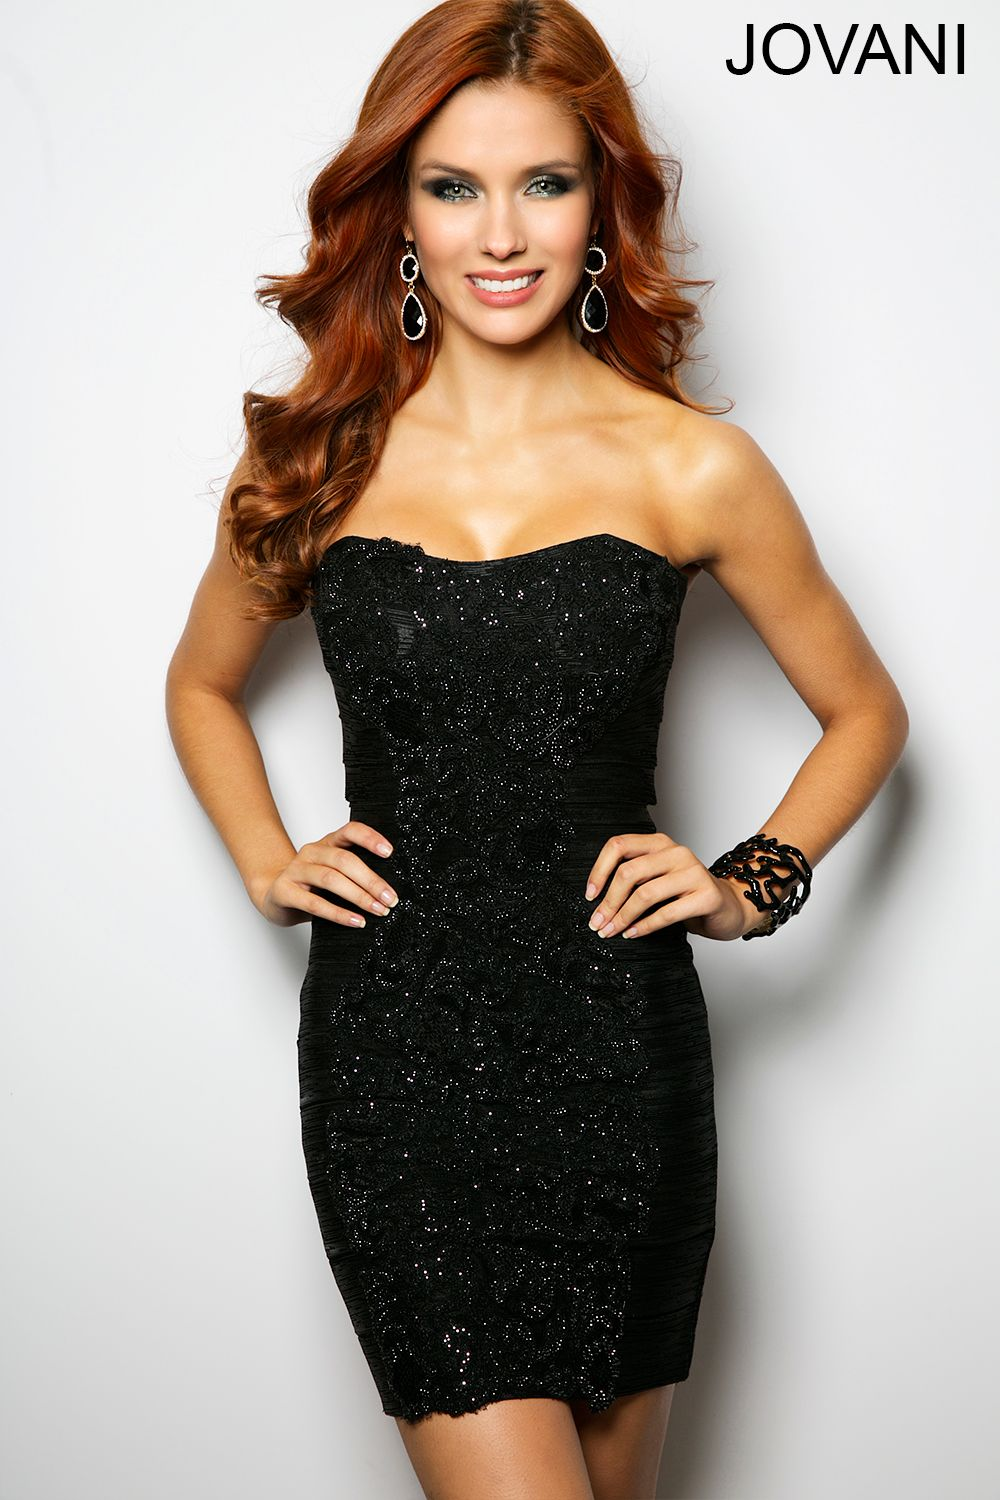 You cannot go wrong with this sparkling jovani short dress